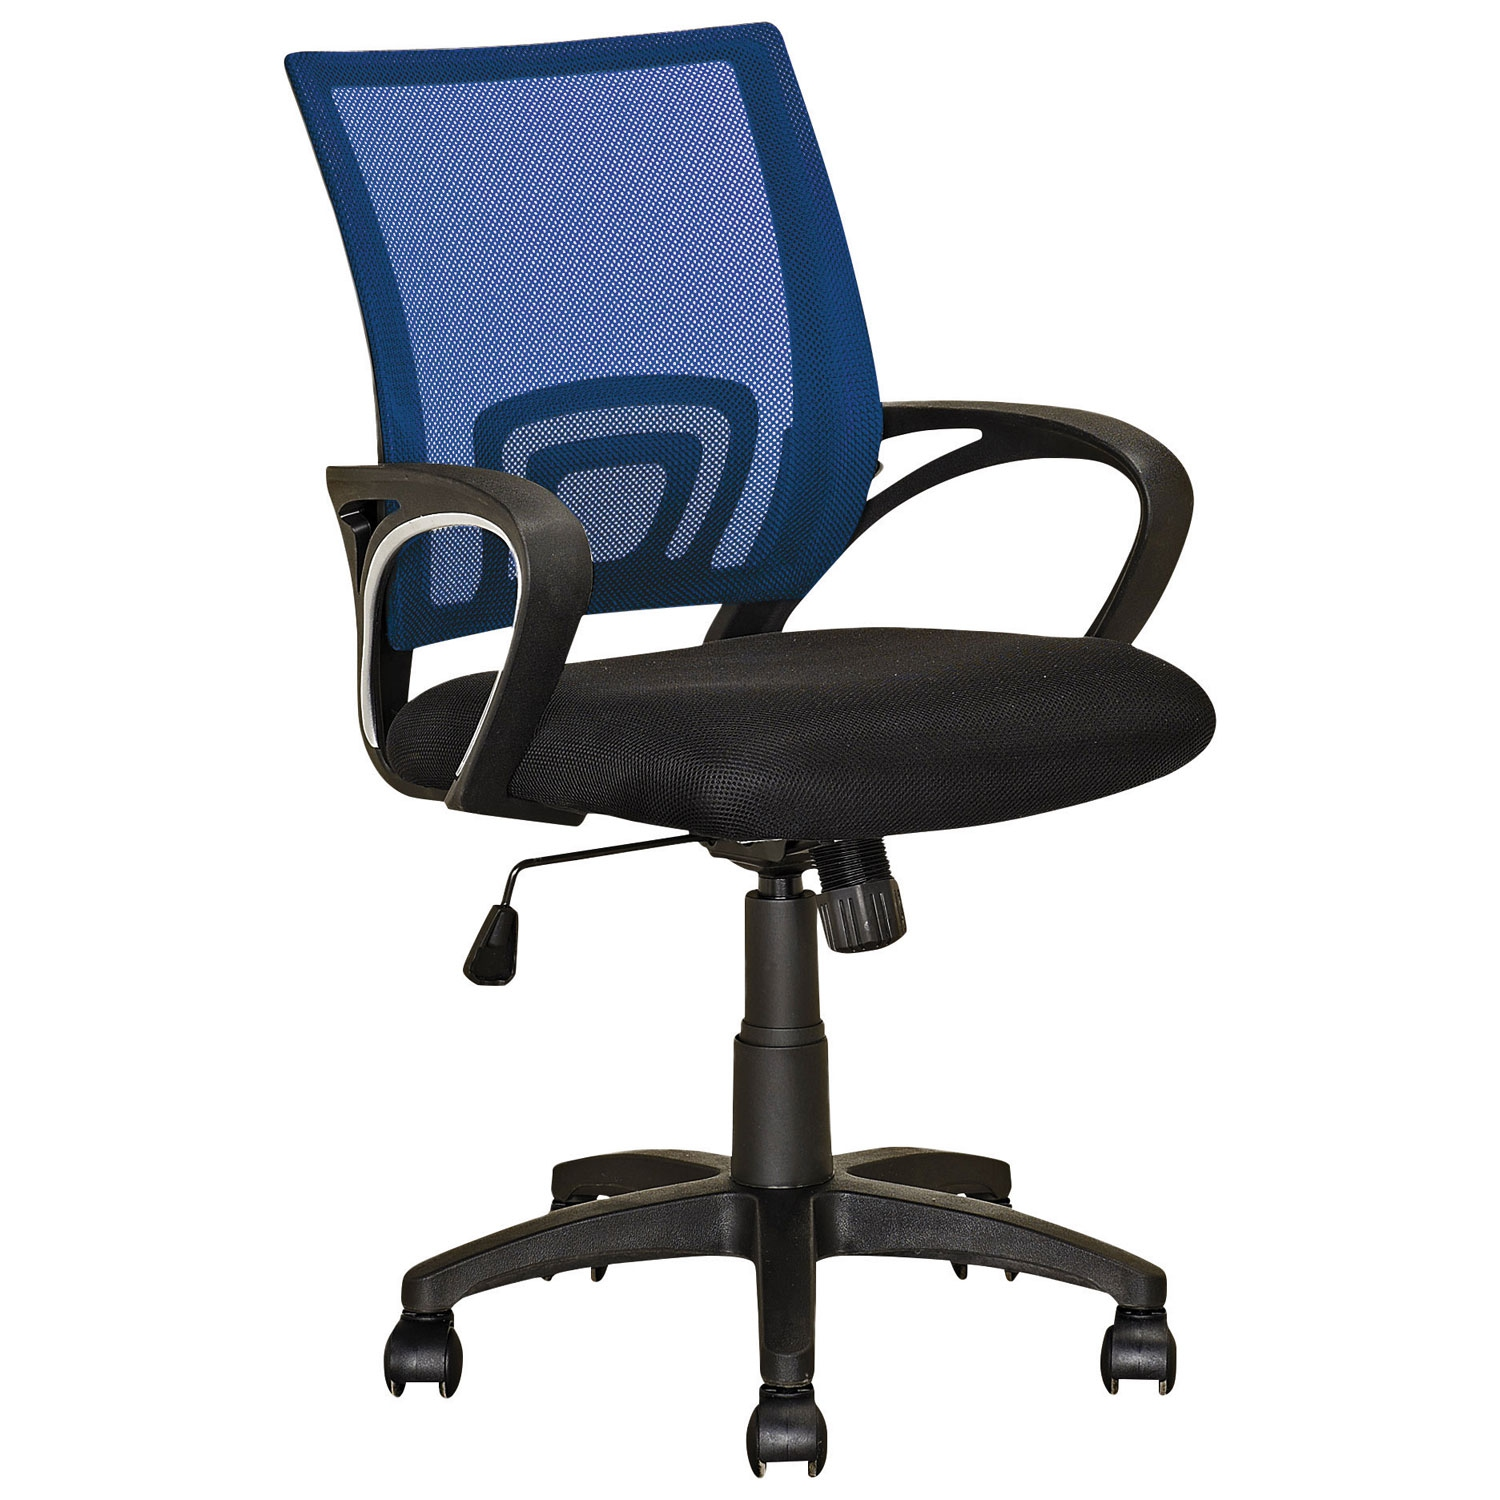 CorLiving Mid Back Task Chair Navy Blue fice Chairs Best